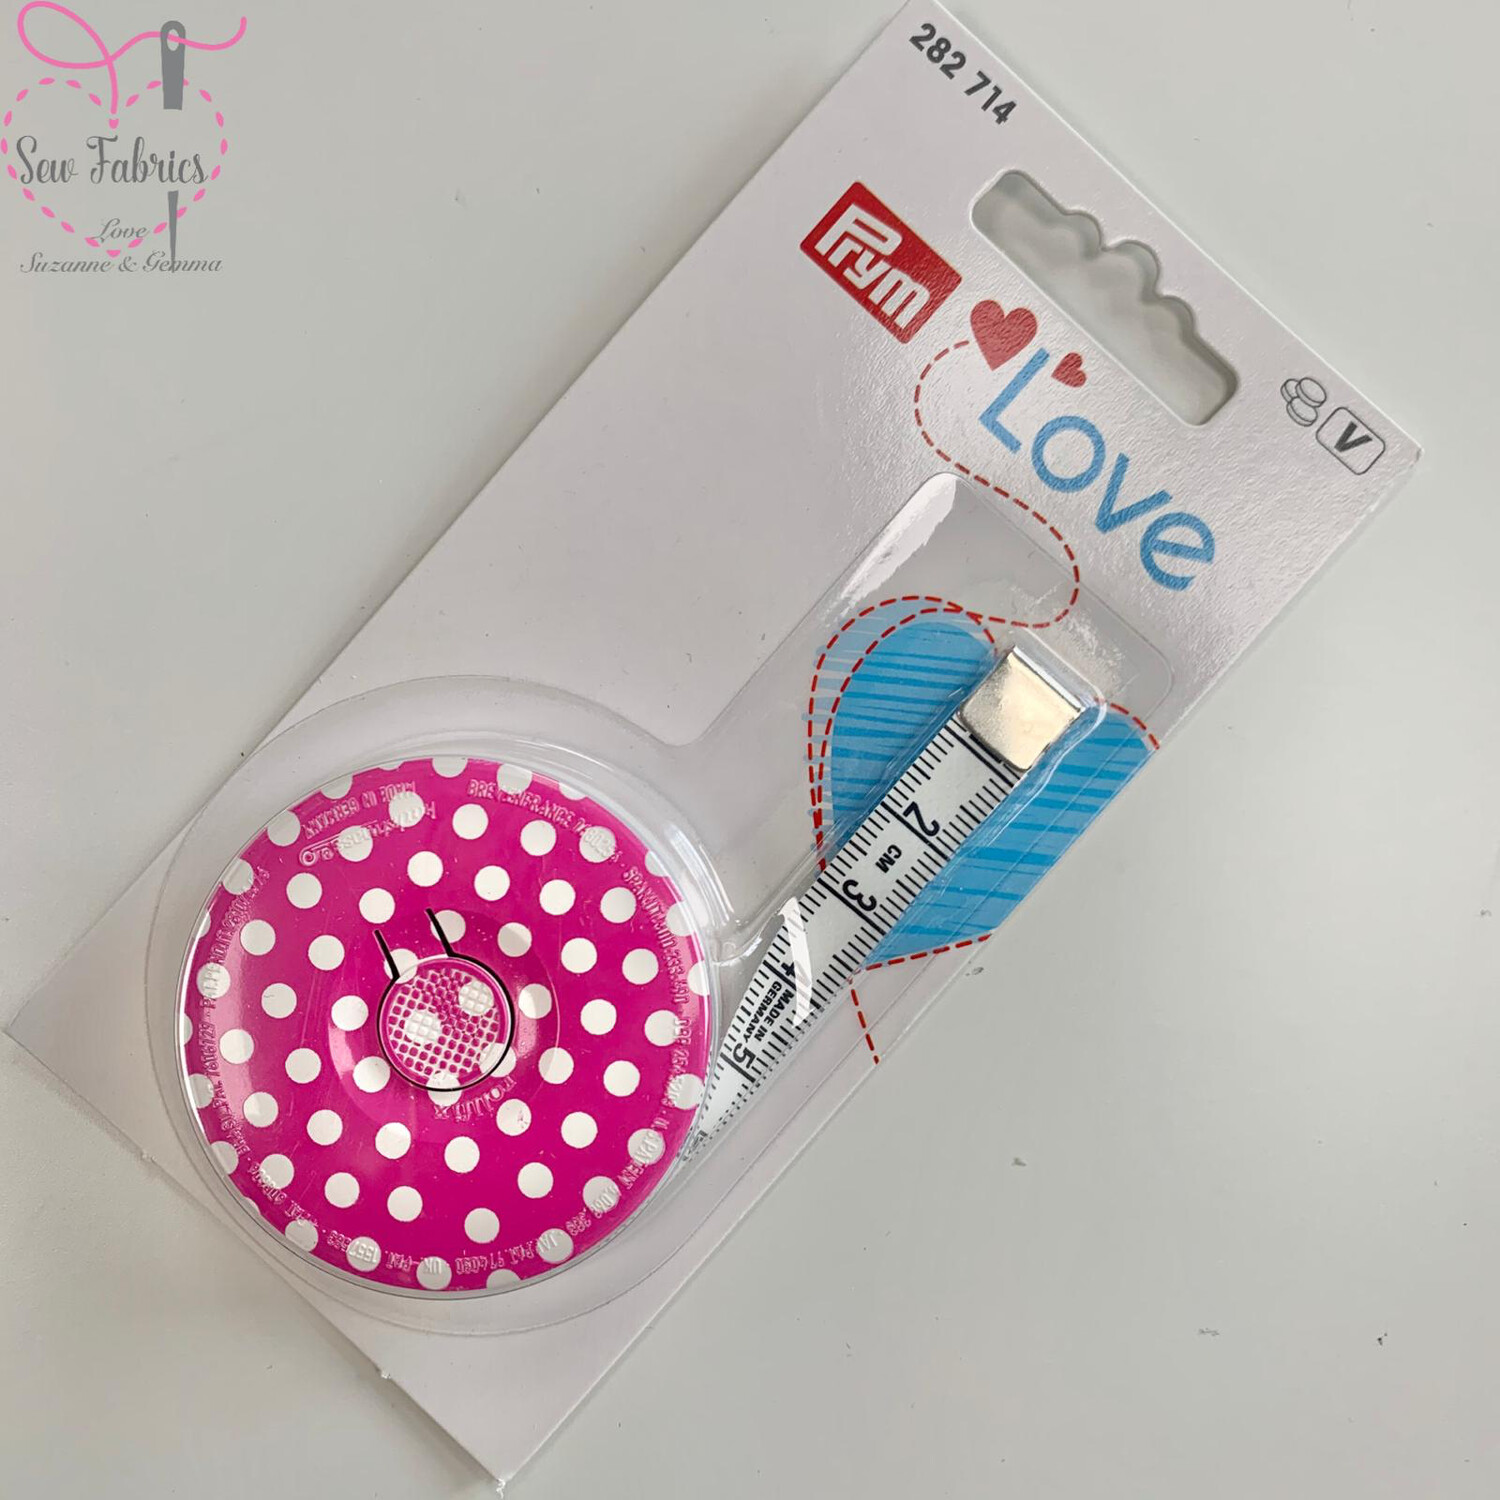 Prym Love Spring Tape Measure, Sewing, Dressmaking, Quilting Accessory, Pink Polka Dot